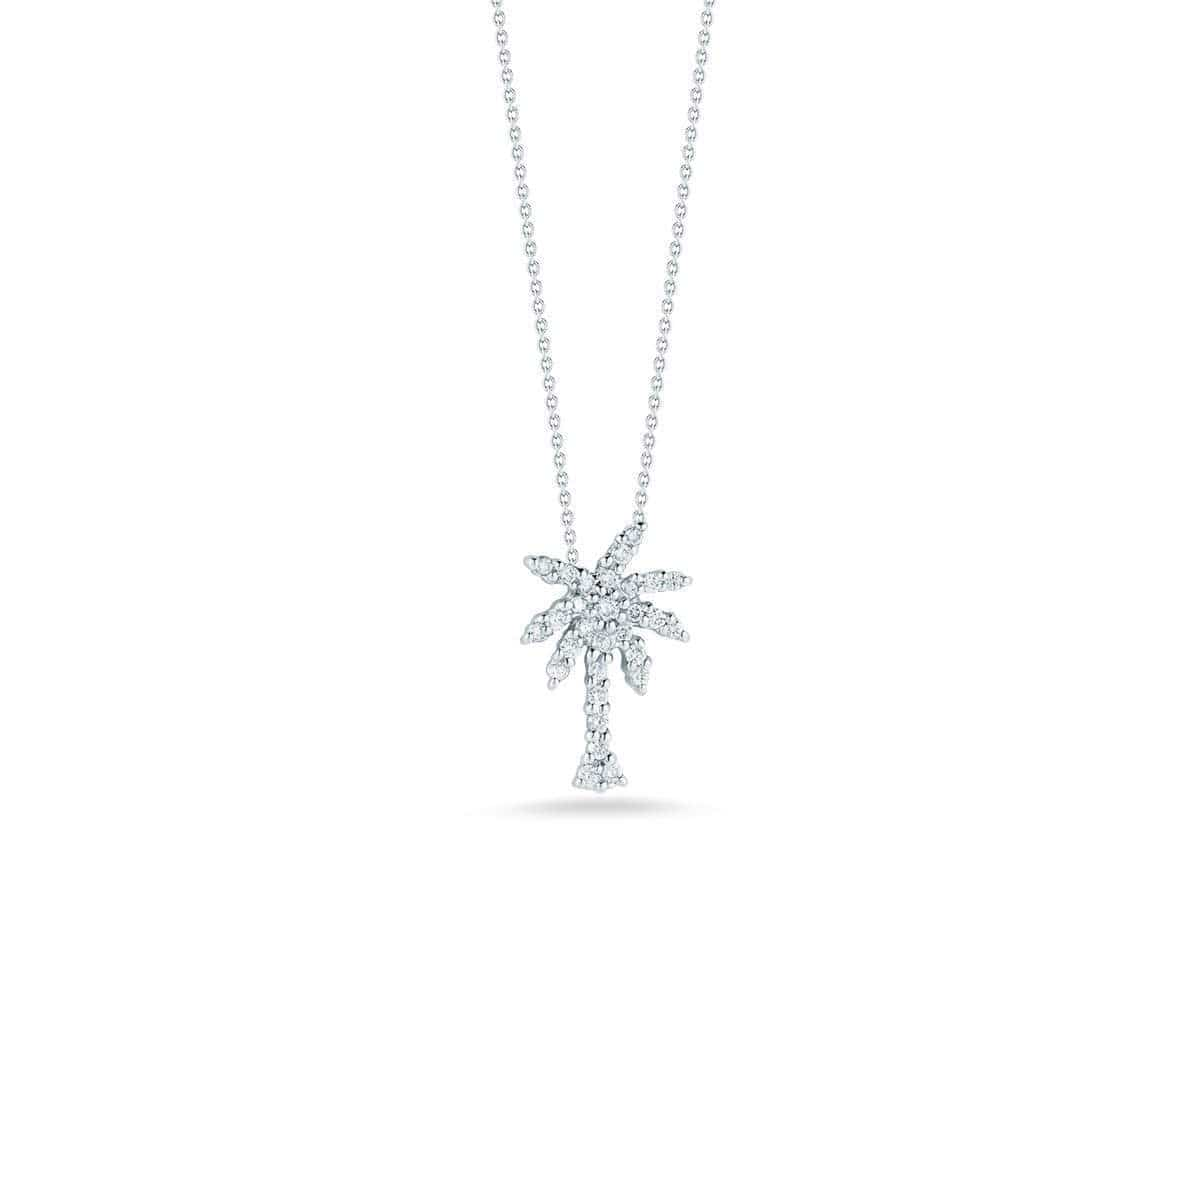 18k White Gold & Diamond Palm Tree Necklace - 001236AWCHX0-Roberto Coin-Renee Taylor Gallery